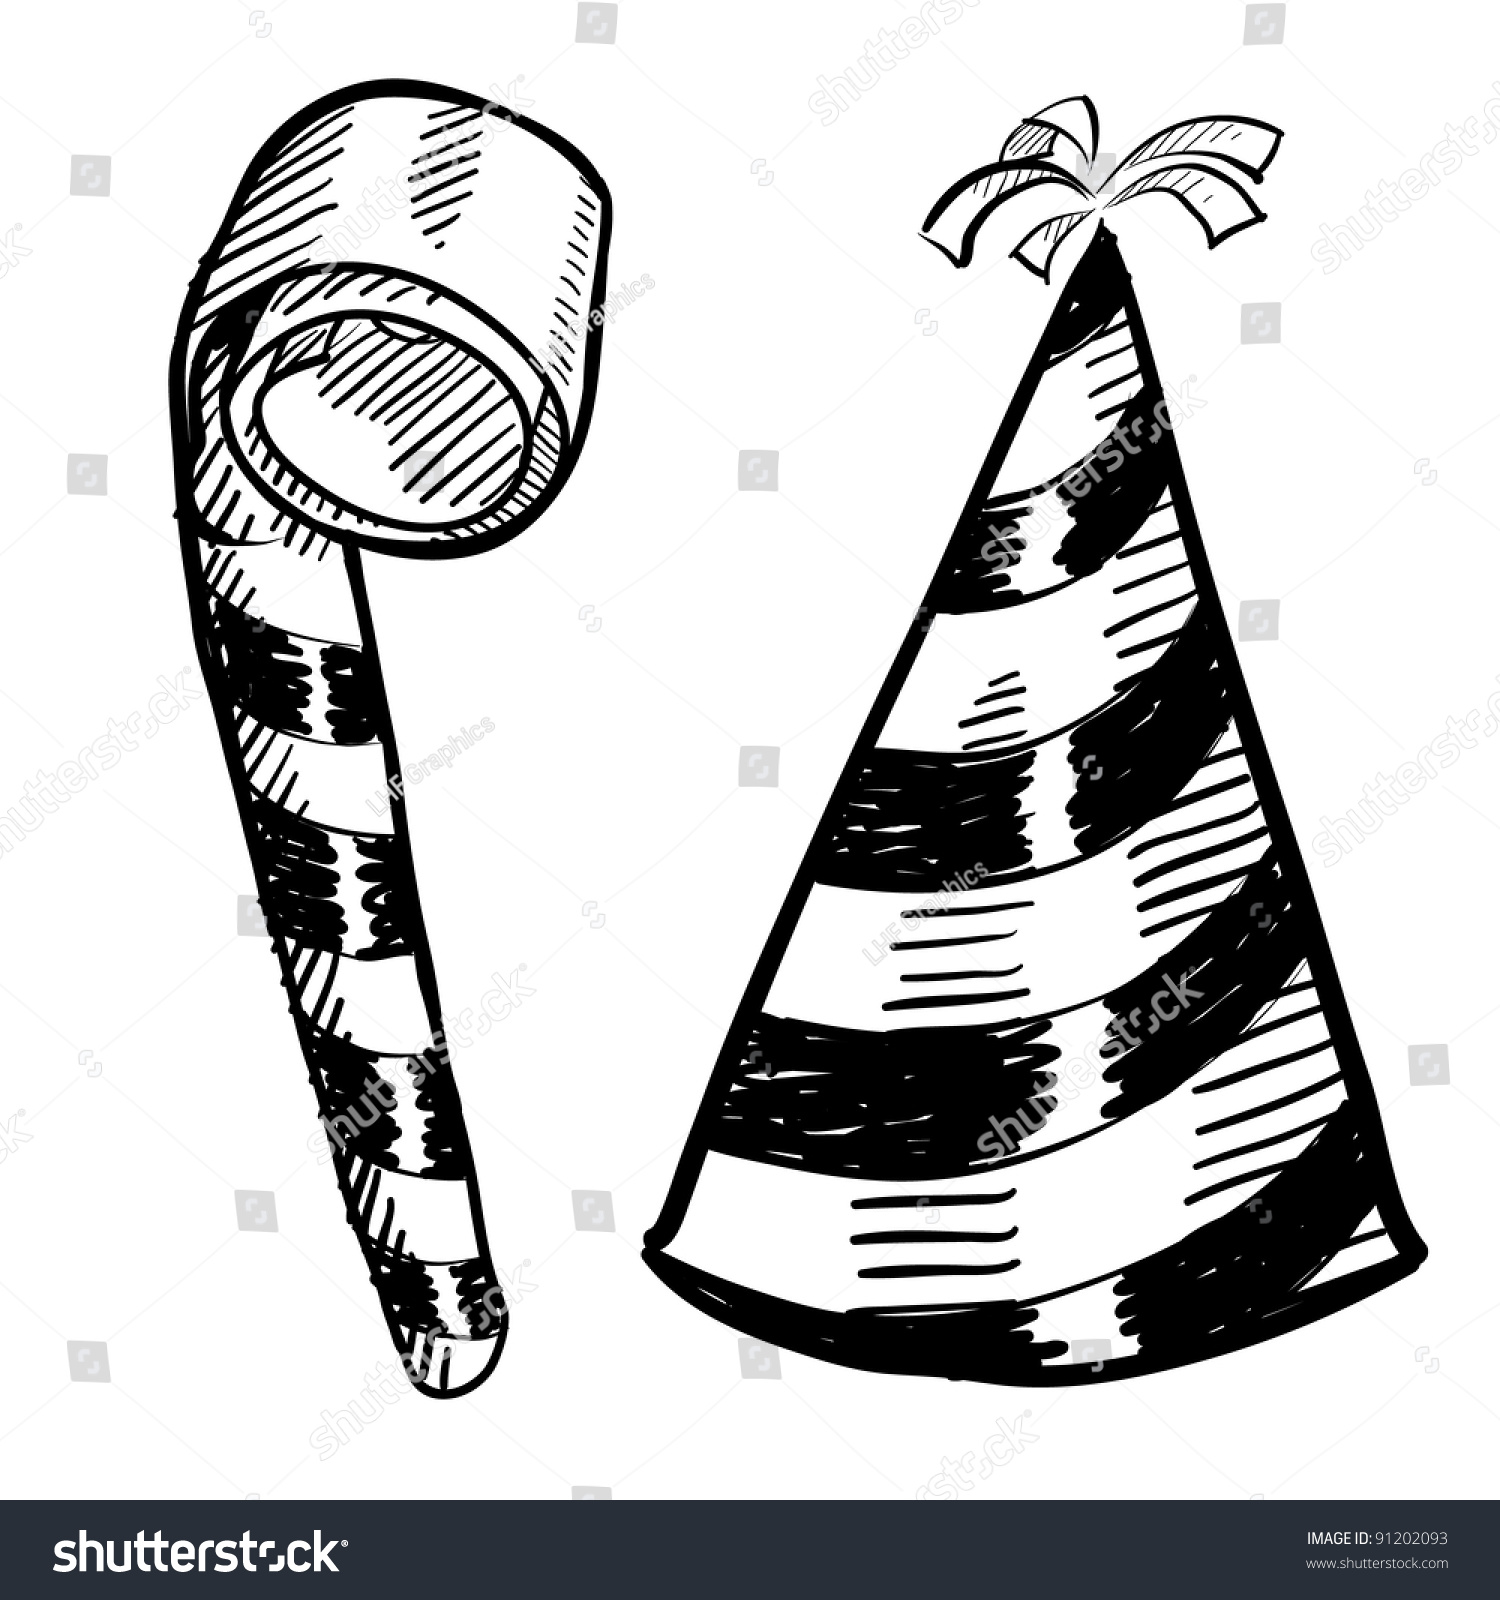 doodle style new years eve party hat and noisemaker illustration in vector format suitable for web